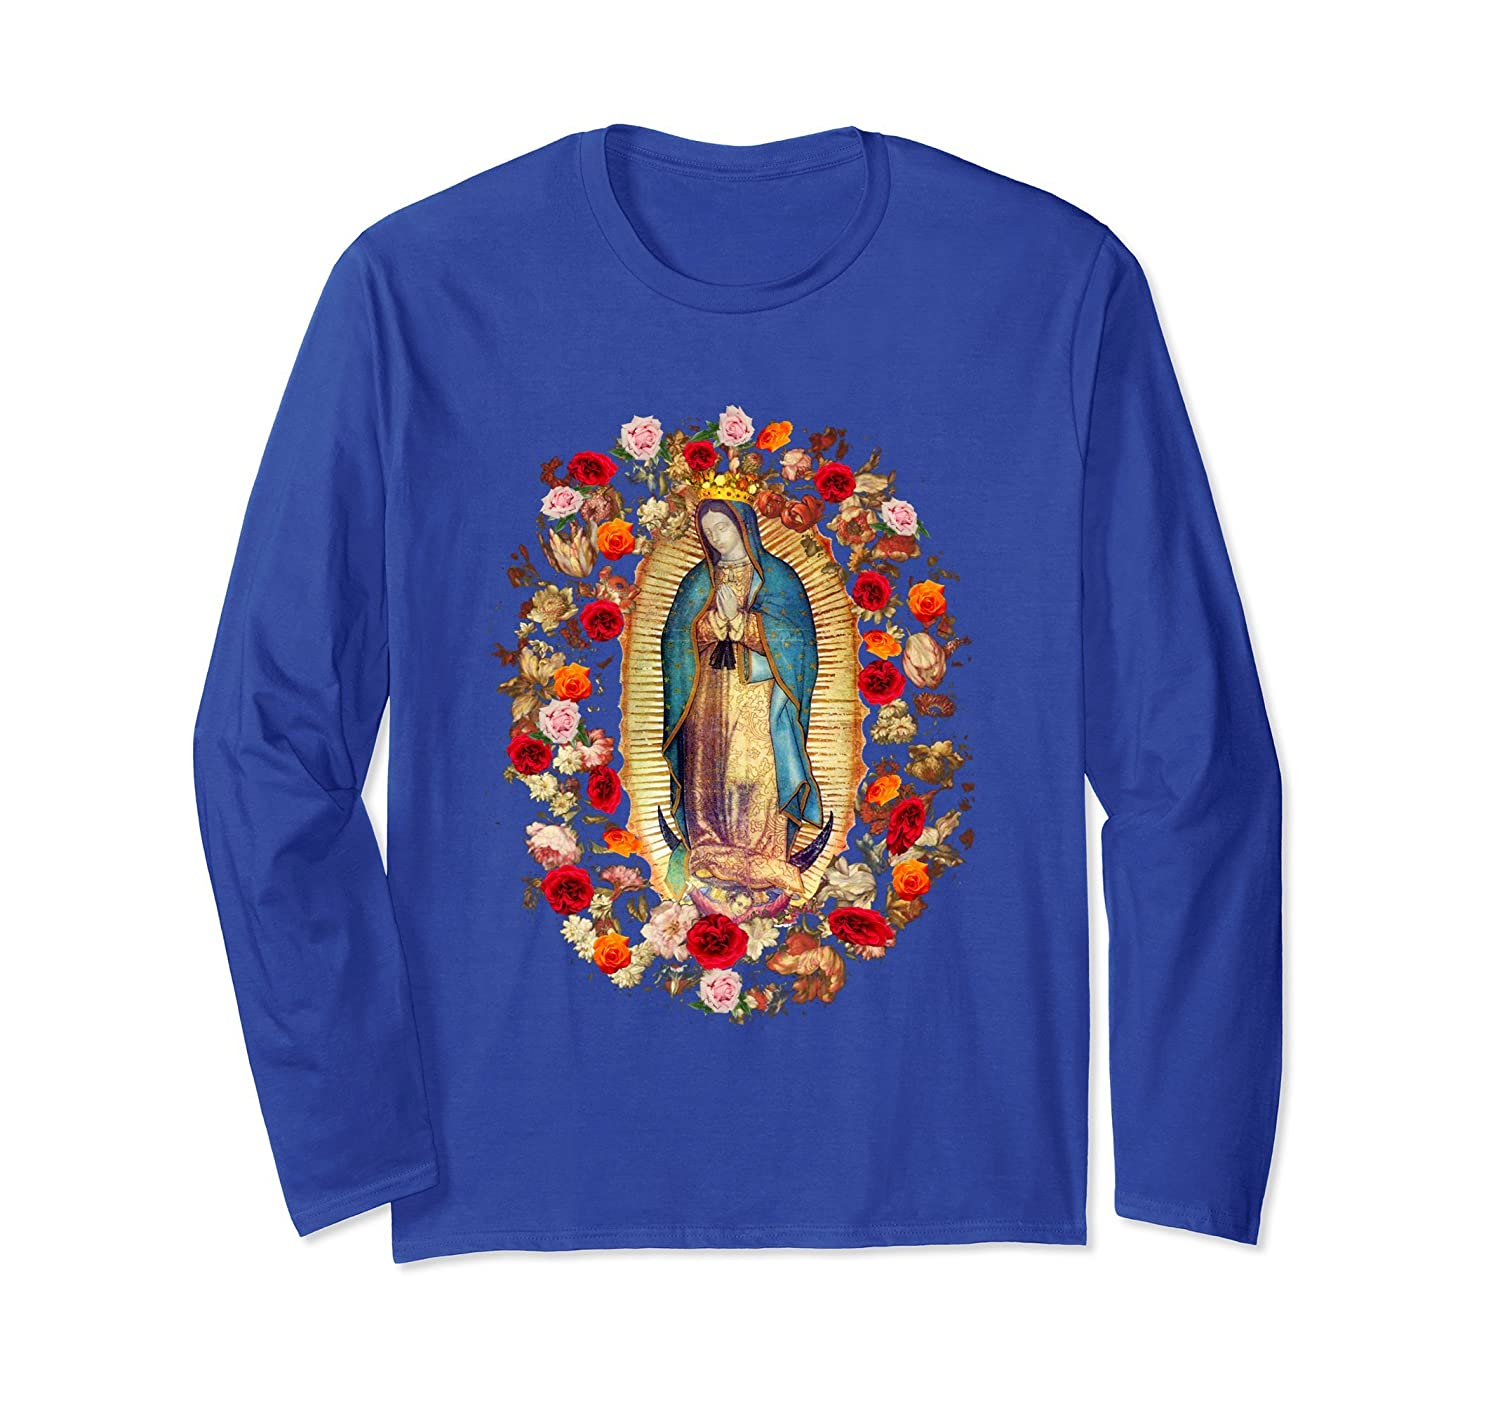 32006fb92 Our Lady of Guadalupe Virgin Mary Catholic T-Shirt Mexico-ah my ...